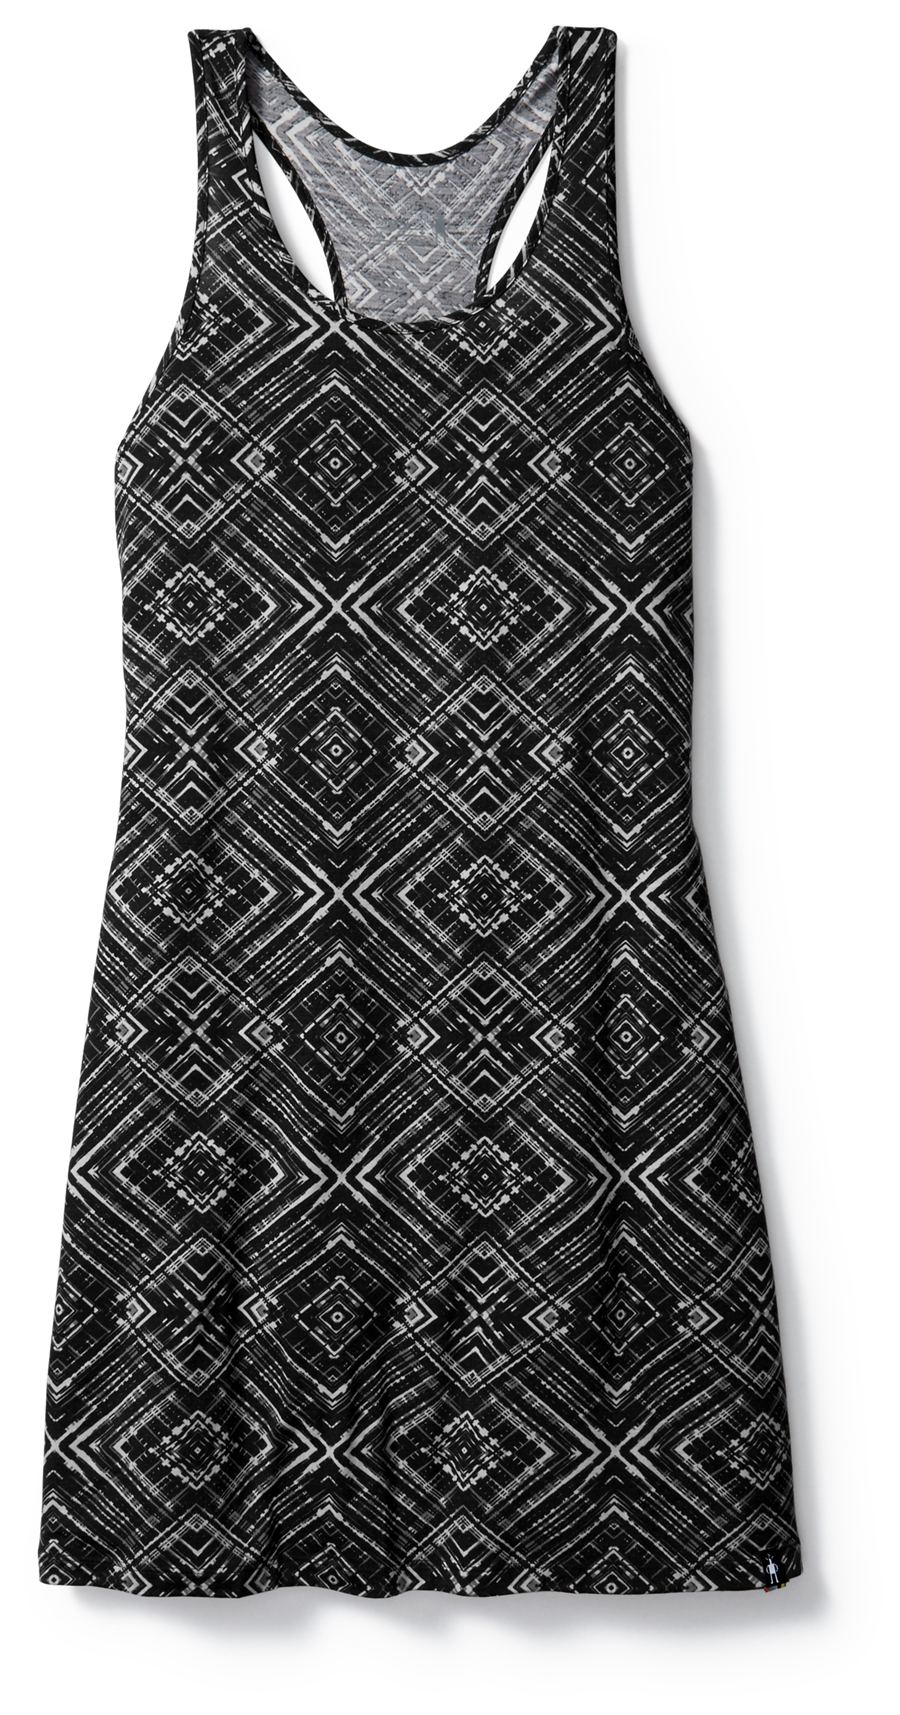 Smartwool: Womens Basic Merino 150 Pattern Dress [Black]